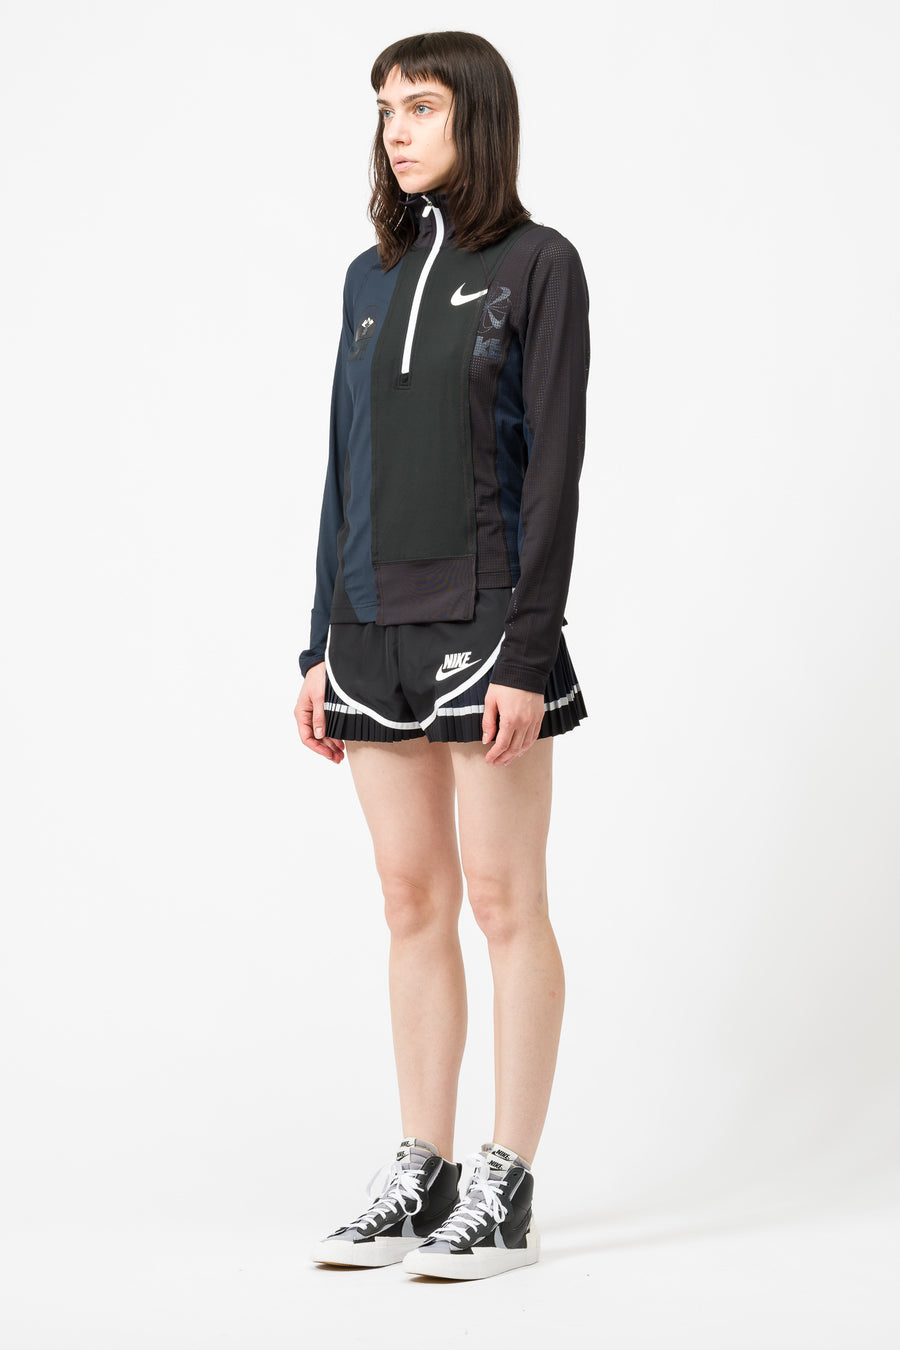 Nike Sacai Half-Zip Running Jacket in Black/Dark Obsidian - Notre